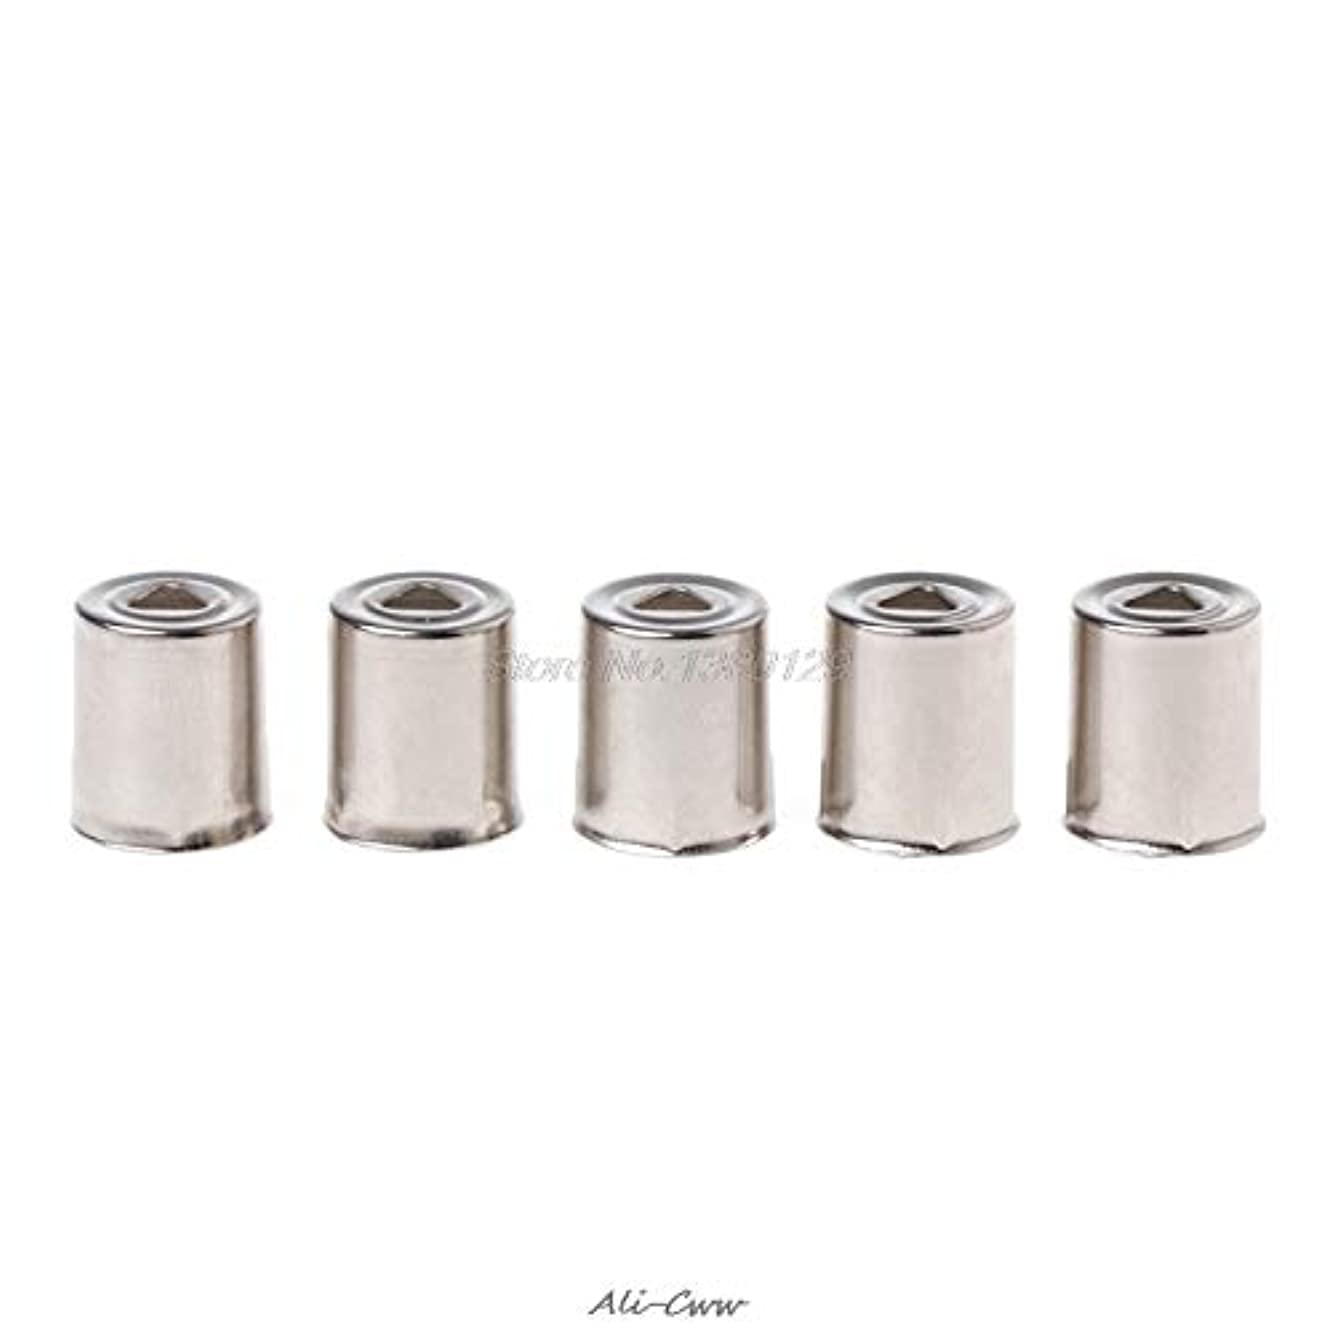 Fevas 5Pcs/Set Steel Cap Microwave Oven Replacement Round Hole Magnetron Silver Tone 17mm X 13.5mm AUG_27